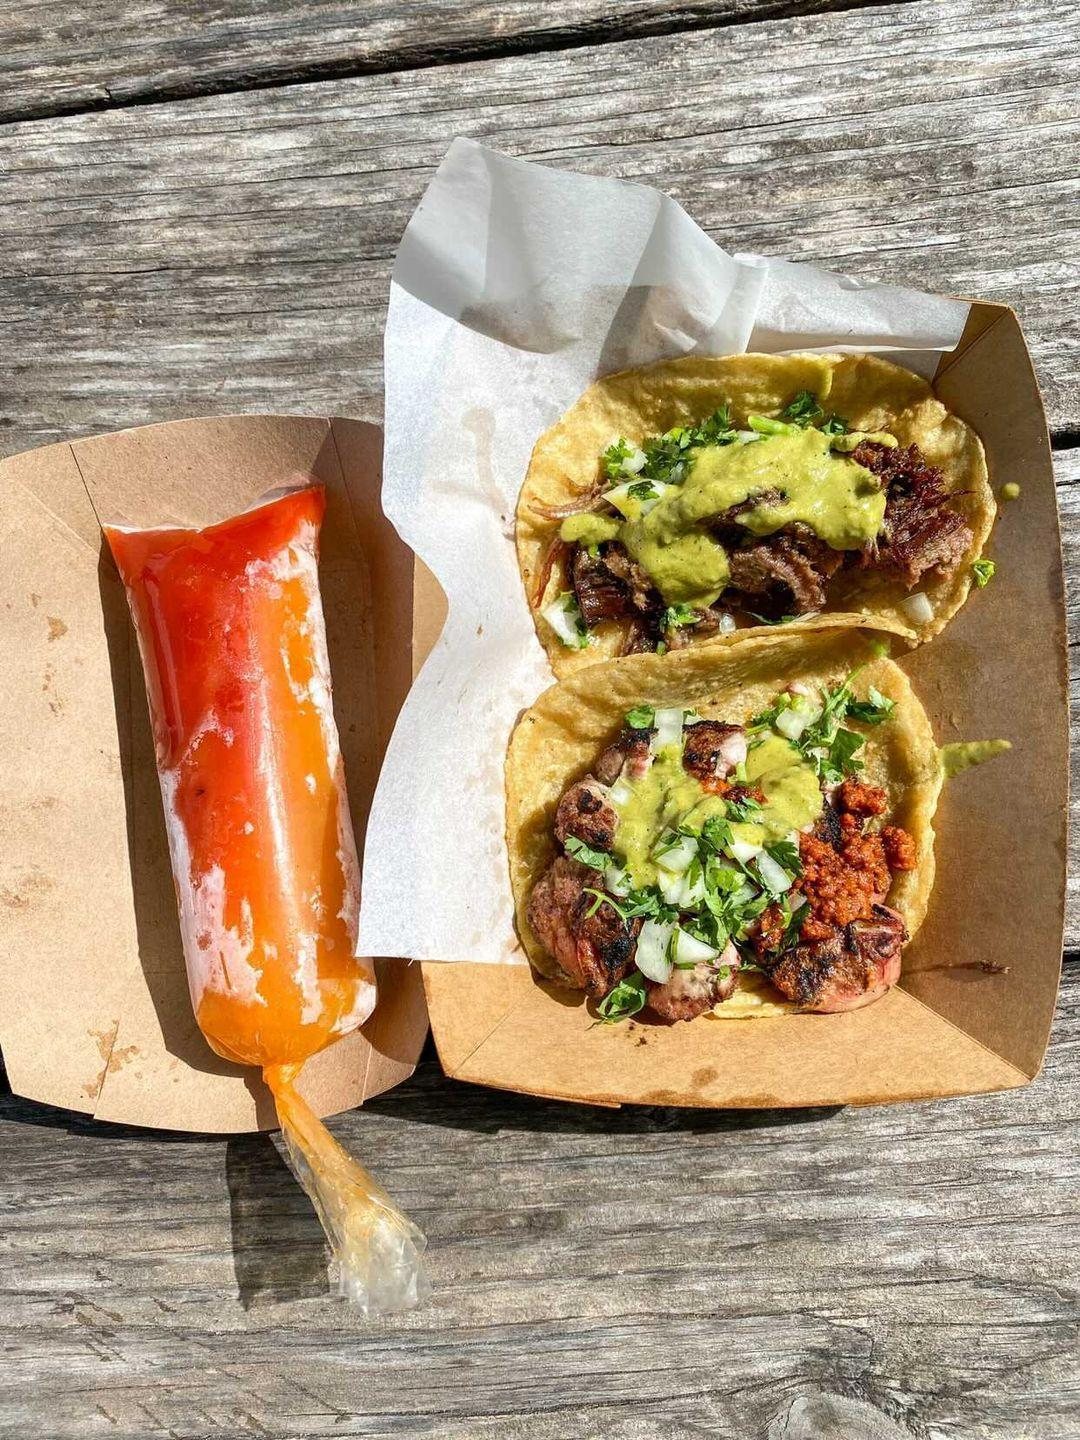 A plastic tube of red-orange and orange frozen liquid next to two corn tortillas filled with meats and green sauce.